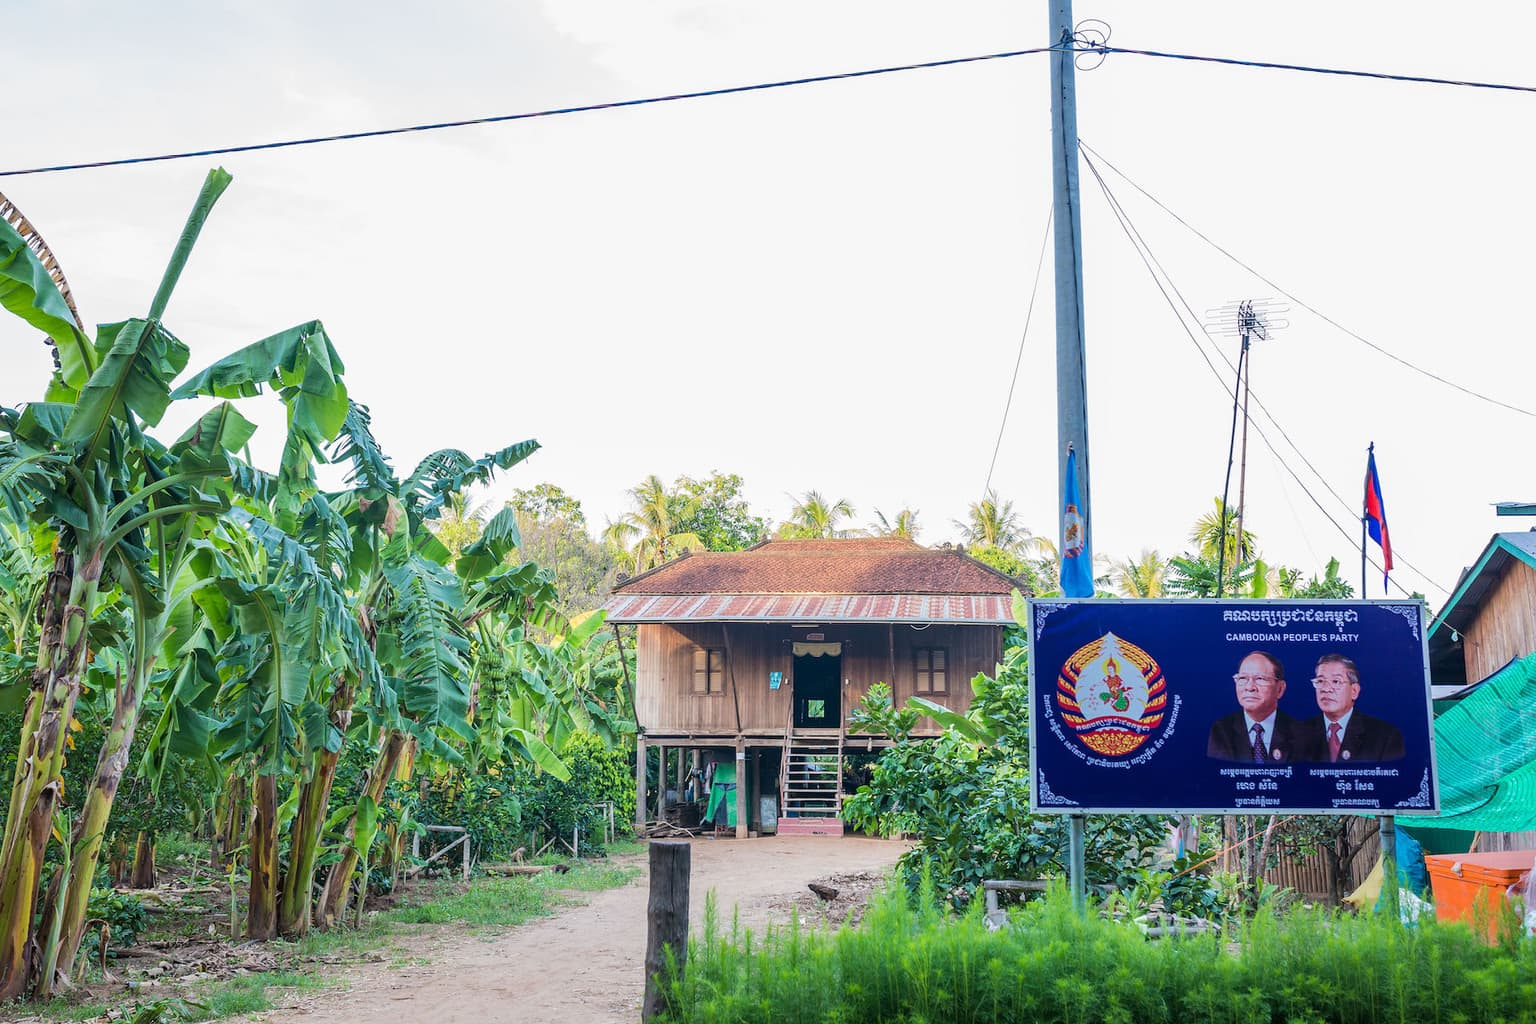 Signs of the leading party are everywhere, one of the interesting facts about Cambodia